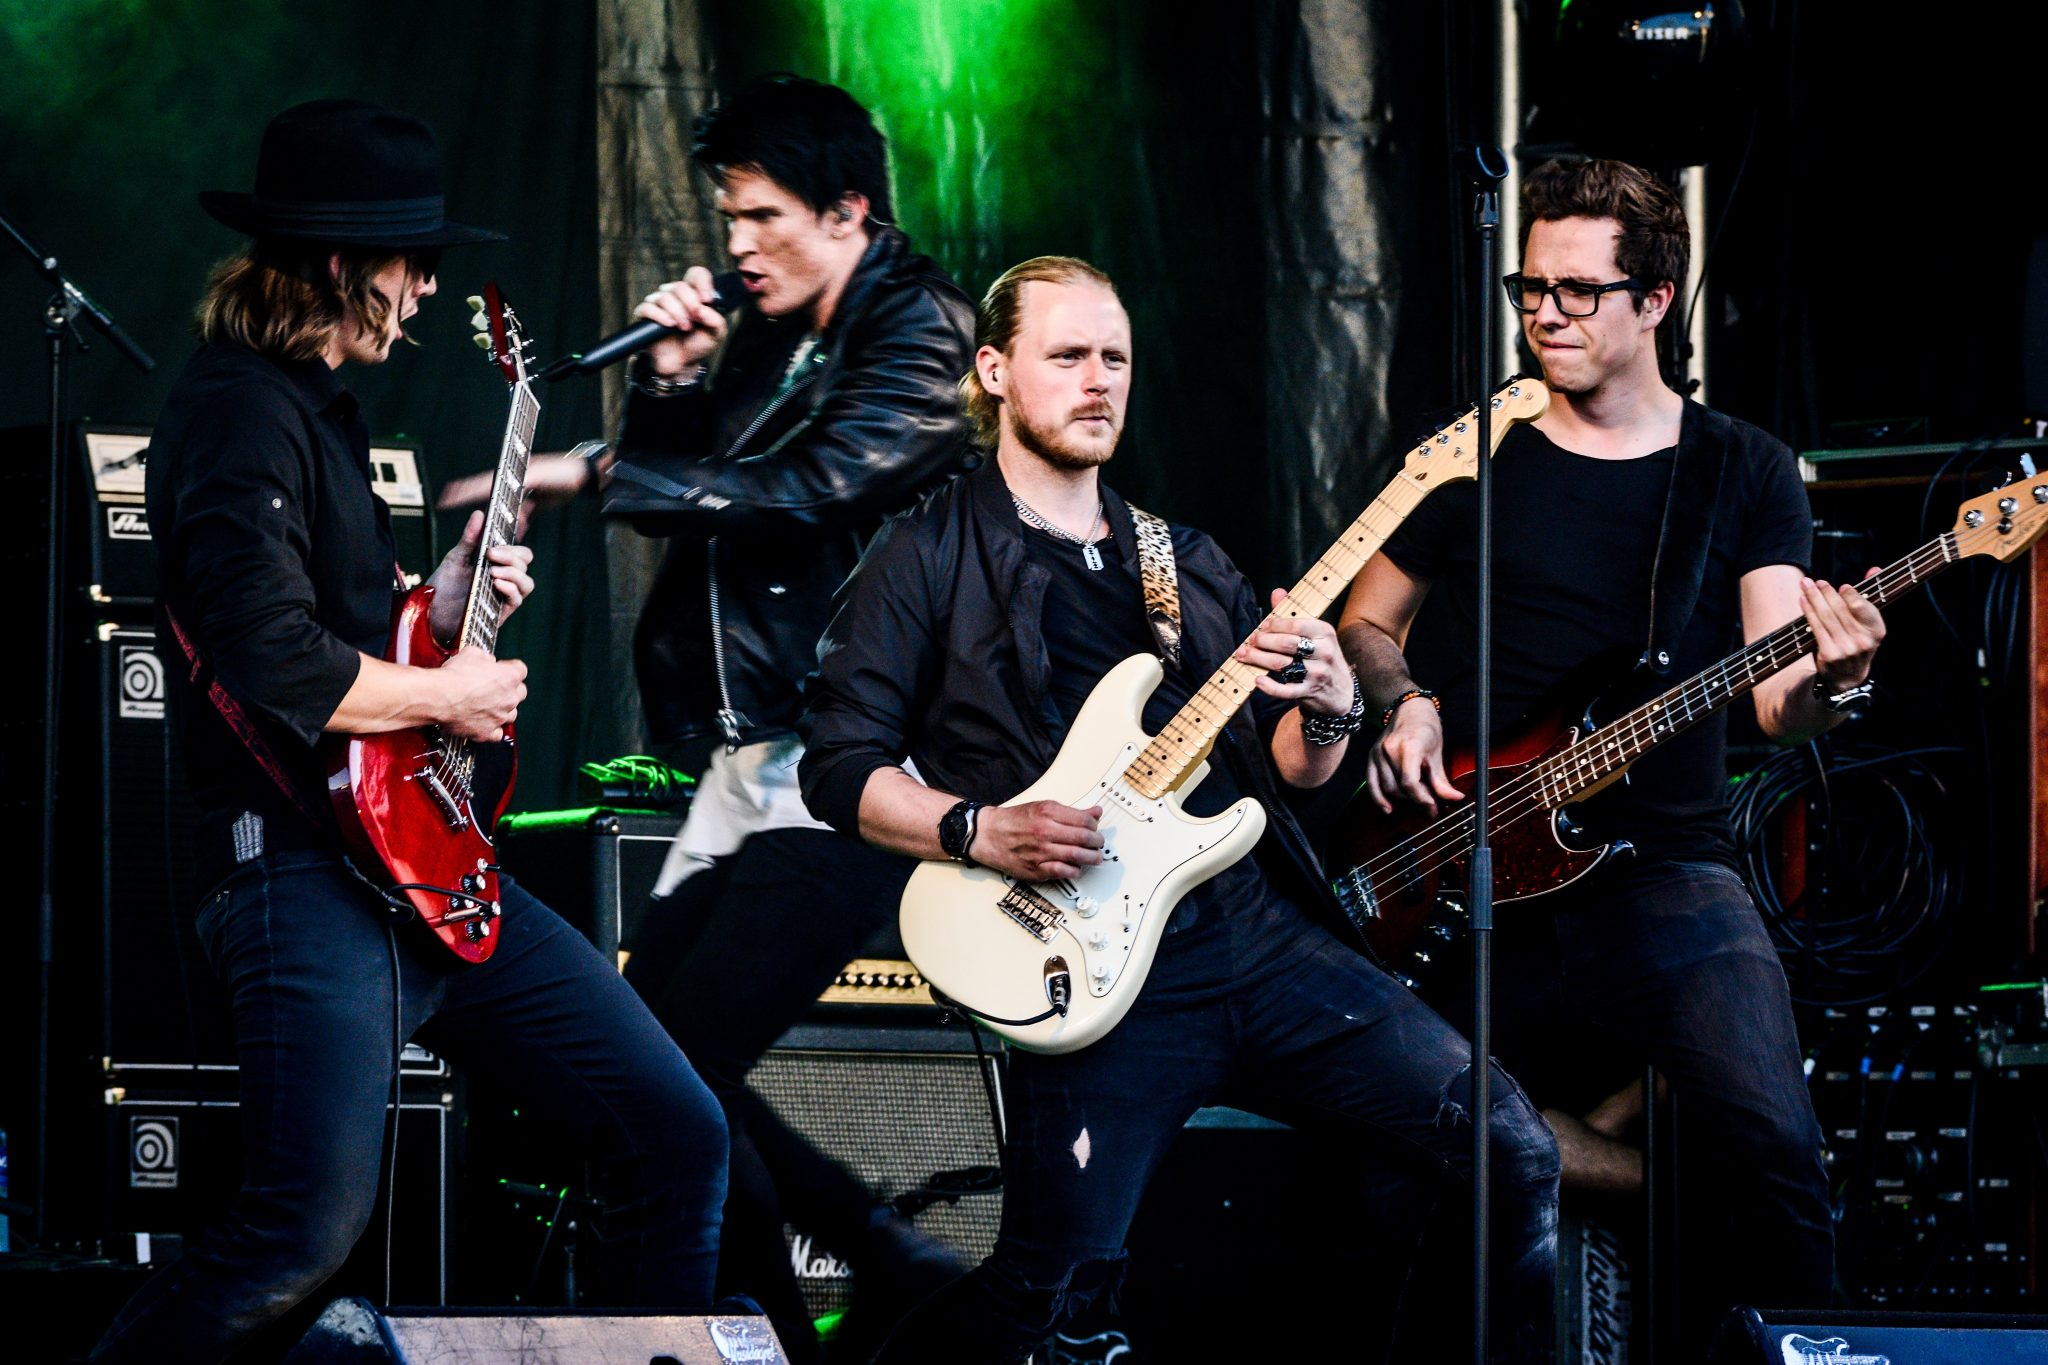 adult rock band performing live